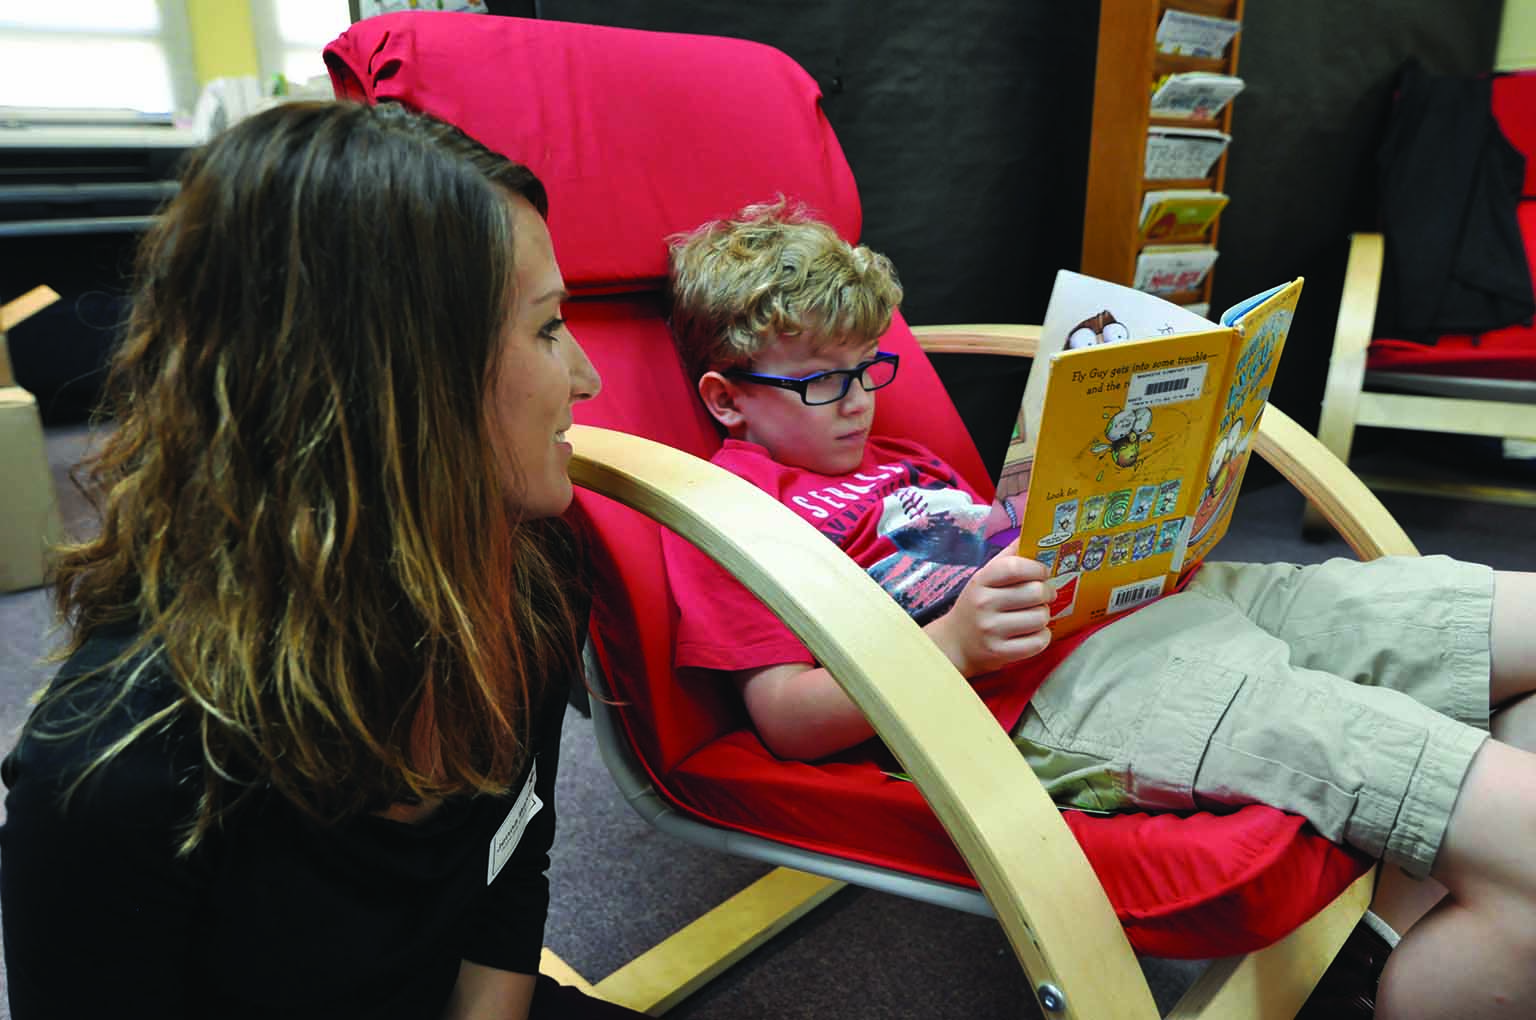 A little boy sits in a red chair and reads a picture book to a woman